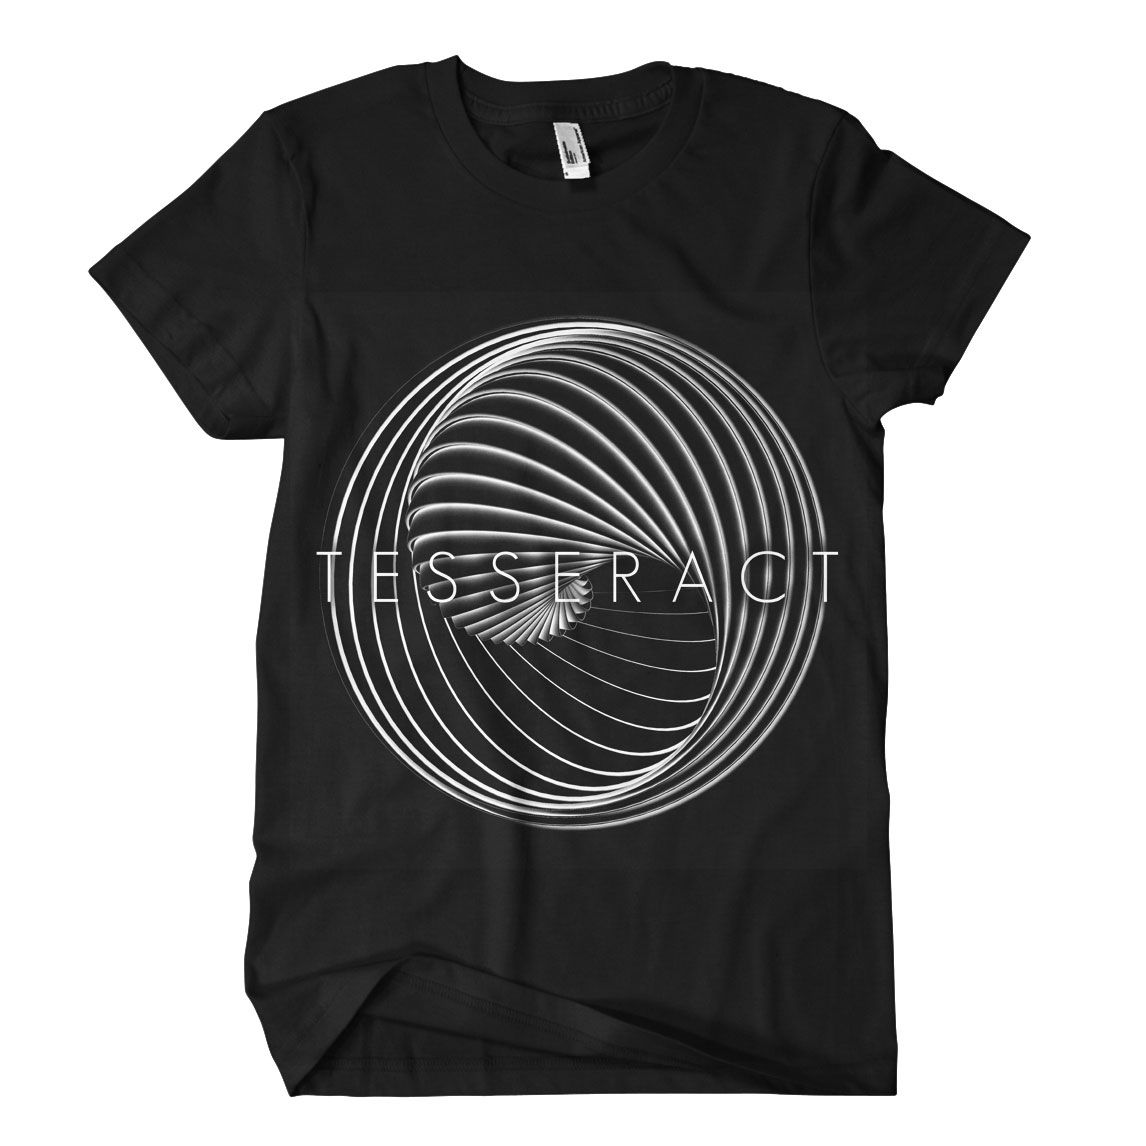 Tesseract (Tour) Black T-Shirt. This has got to be stitched